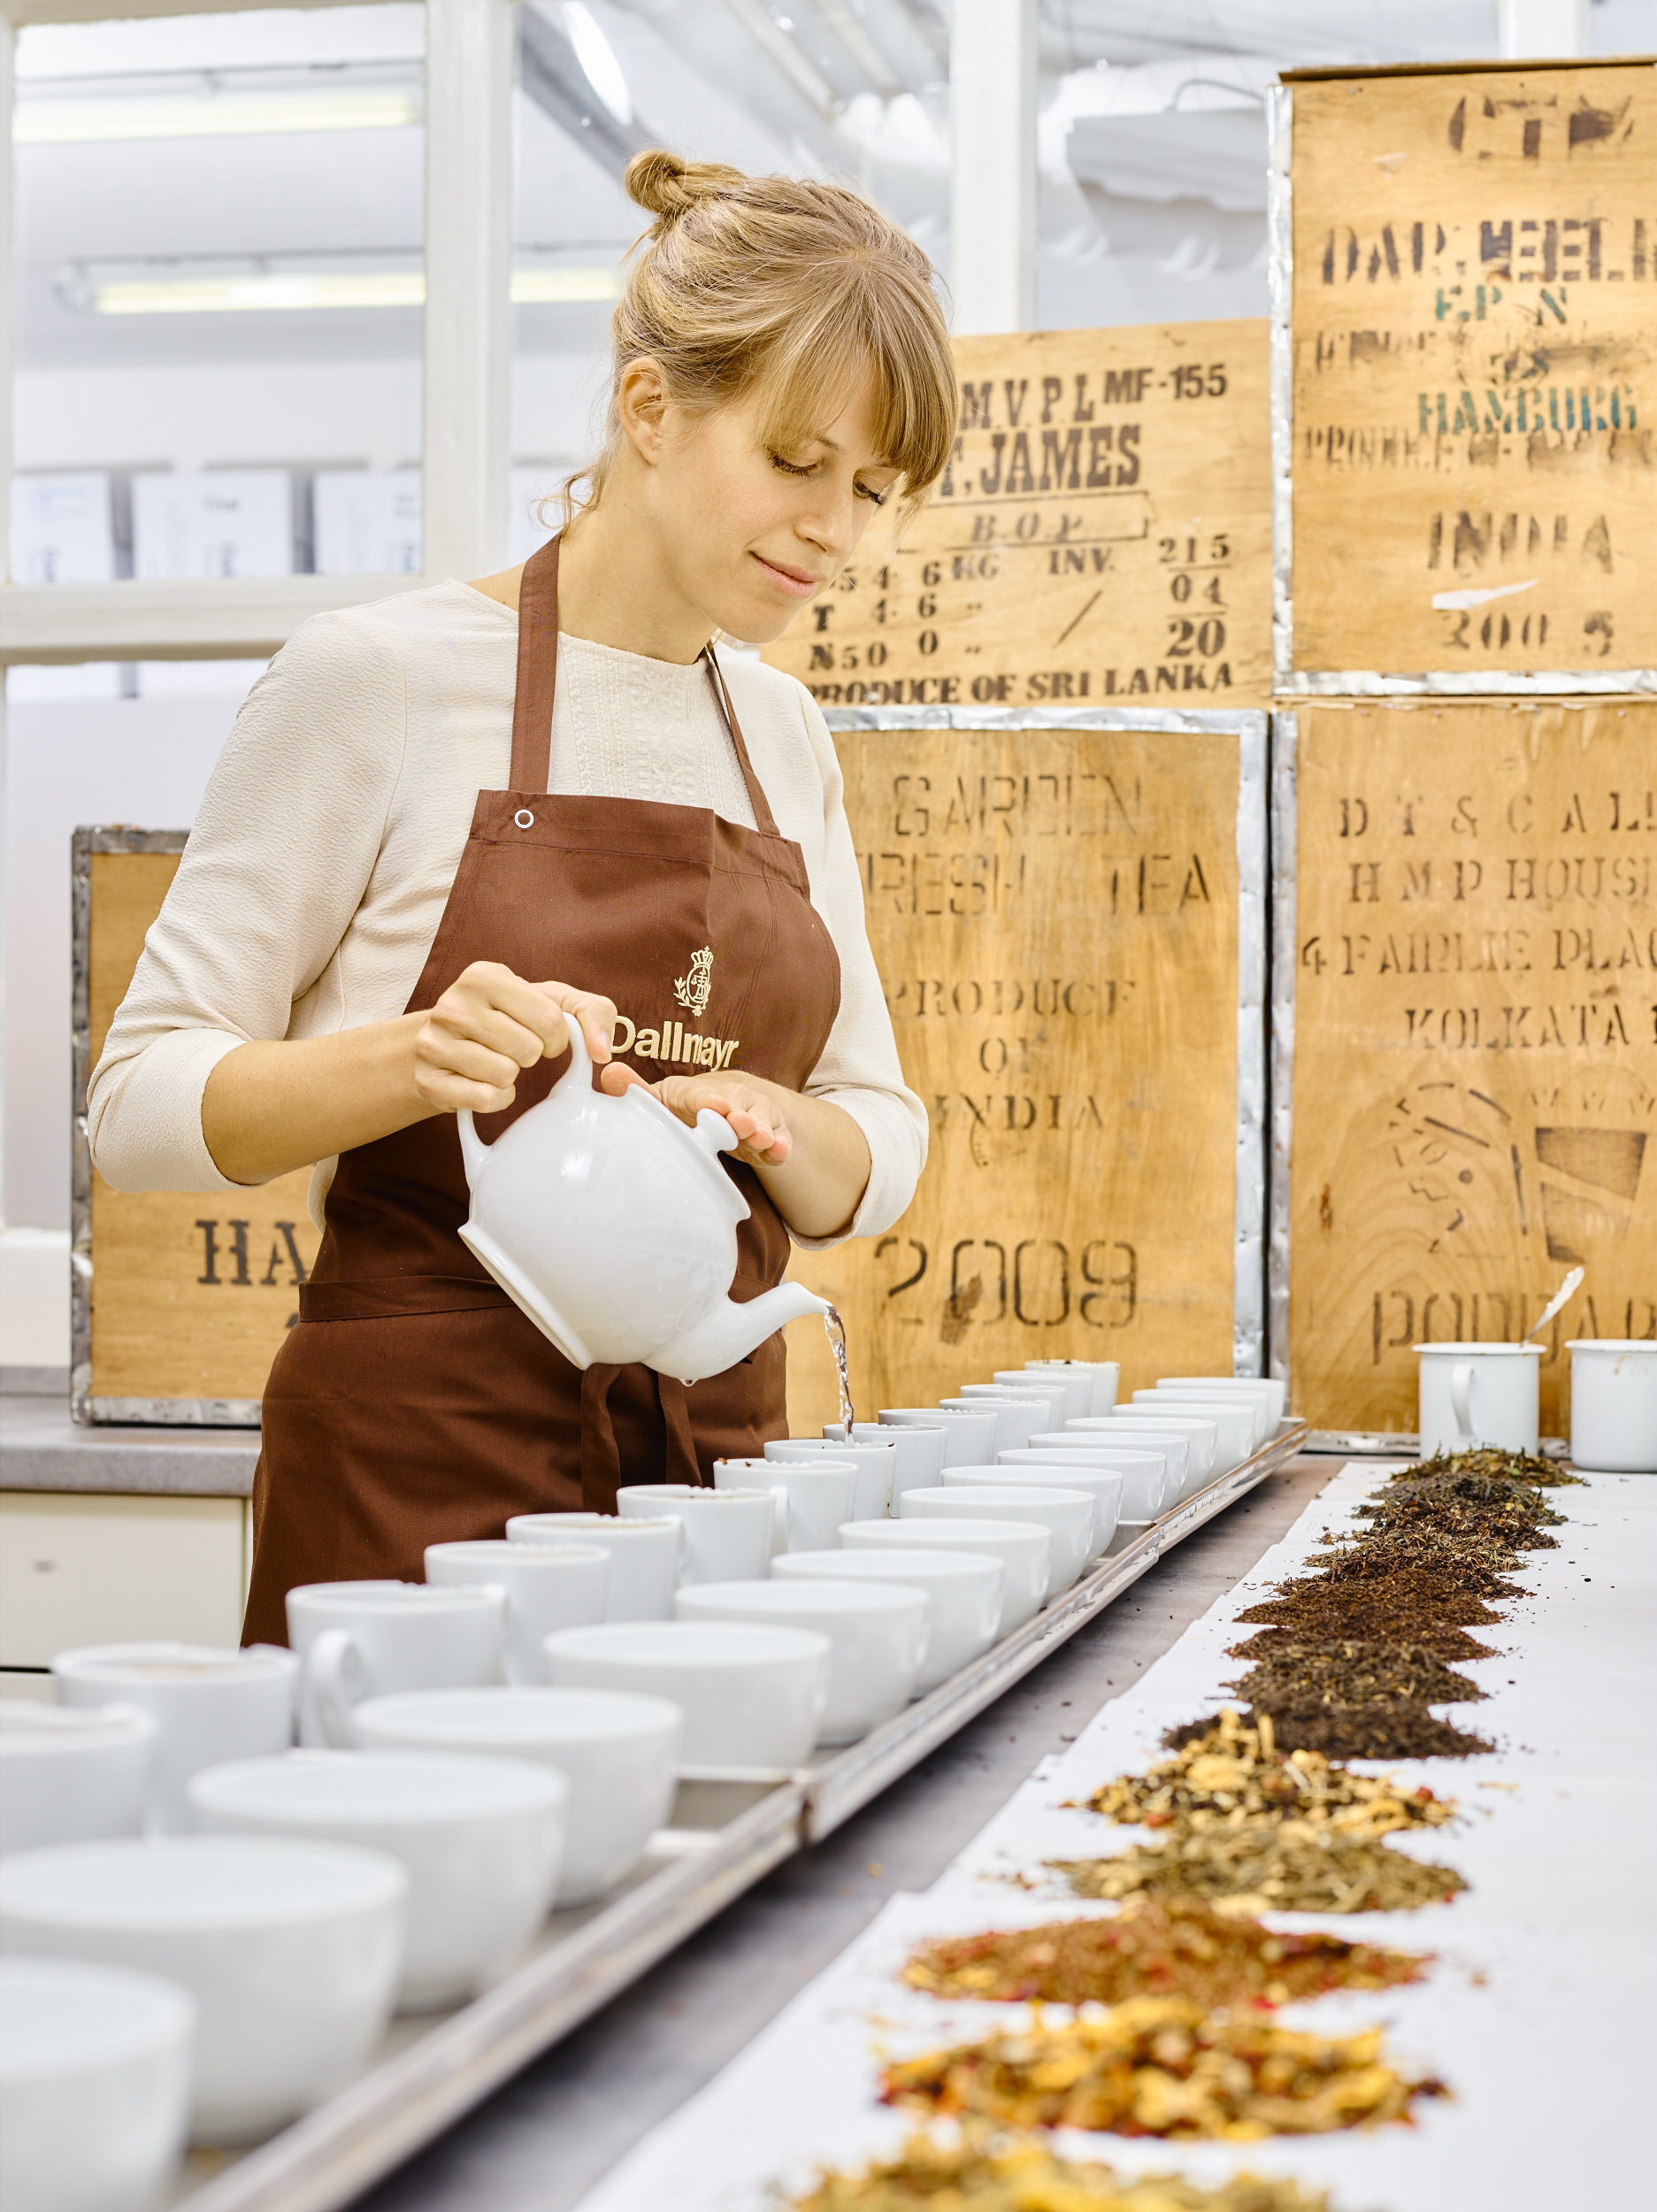 : tea expert from Dallmayr Delicatessen, Munich